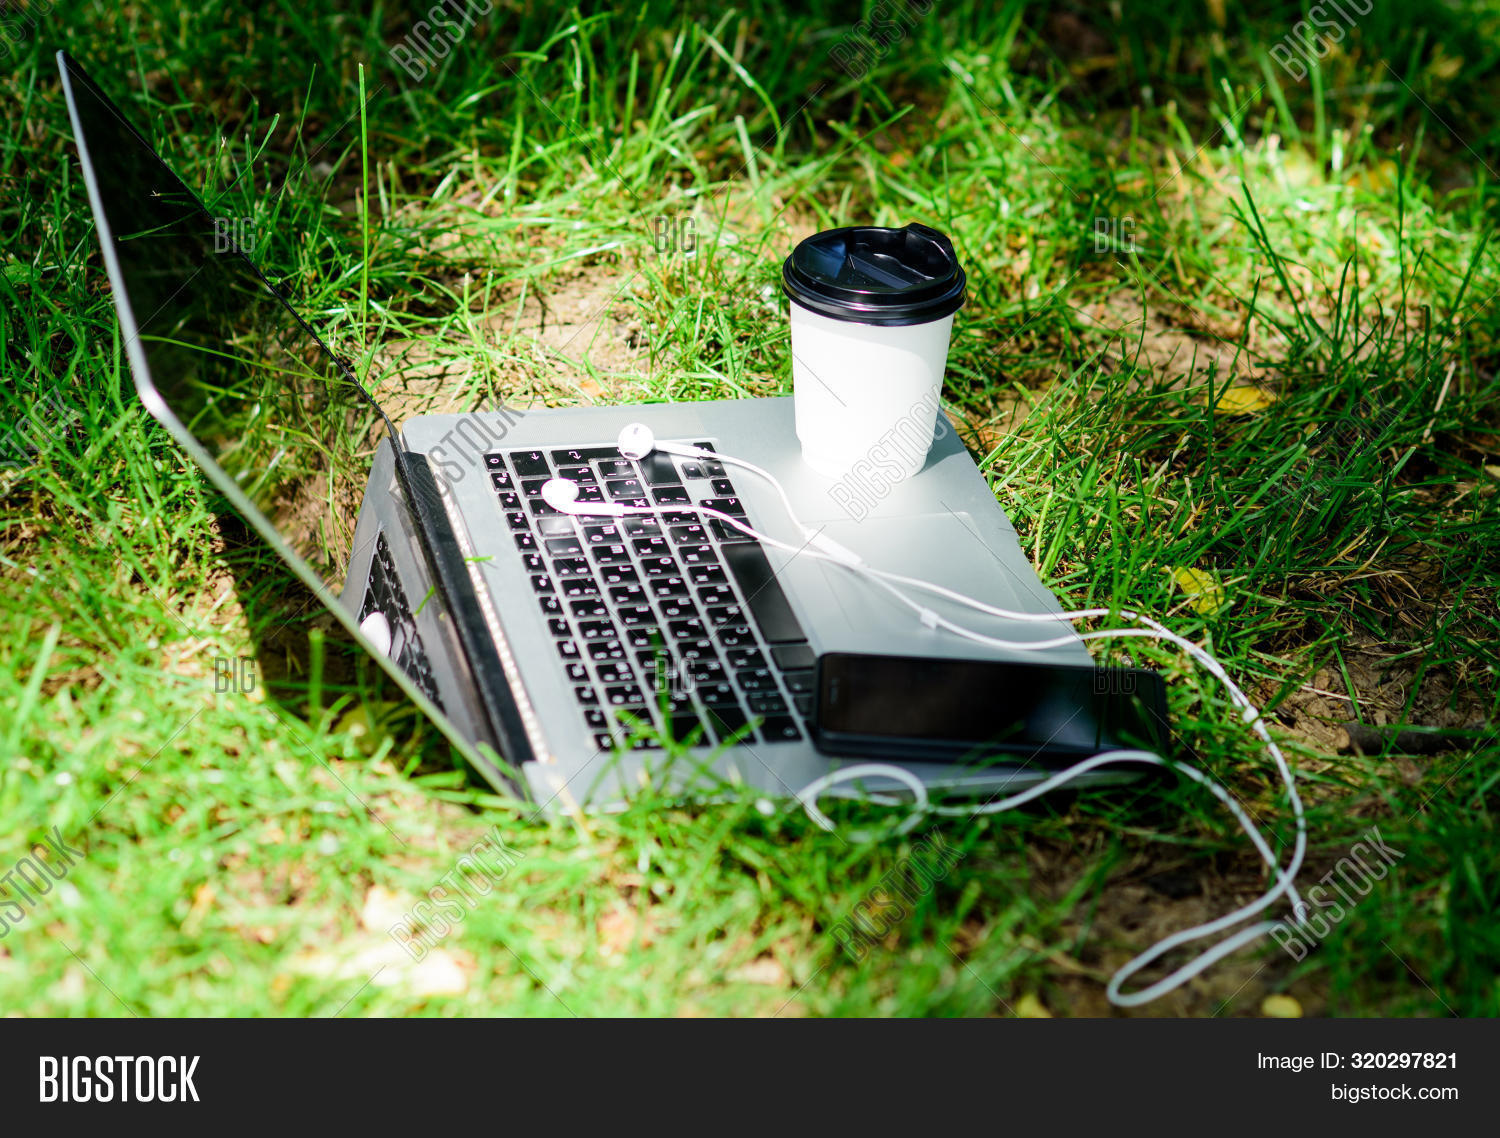 3g,4g,away,beverage,break,business,coffee,communication,computer,connection,country,cup,device,drink,earphones,electronics,environment,fresh,gadgets,garden,grass,green,internet,laptop,meadow,mobile,modern,natural,nature,notebook,office,outdoors,outside,park,relax,smartphone,spring,summer,sunlight,take,technology,time,wireless,work,workplace,workspace